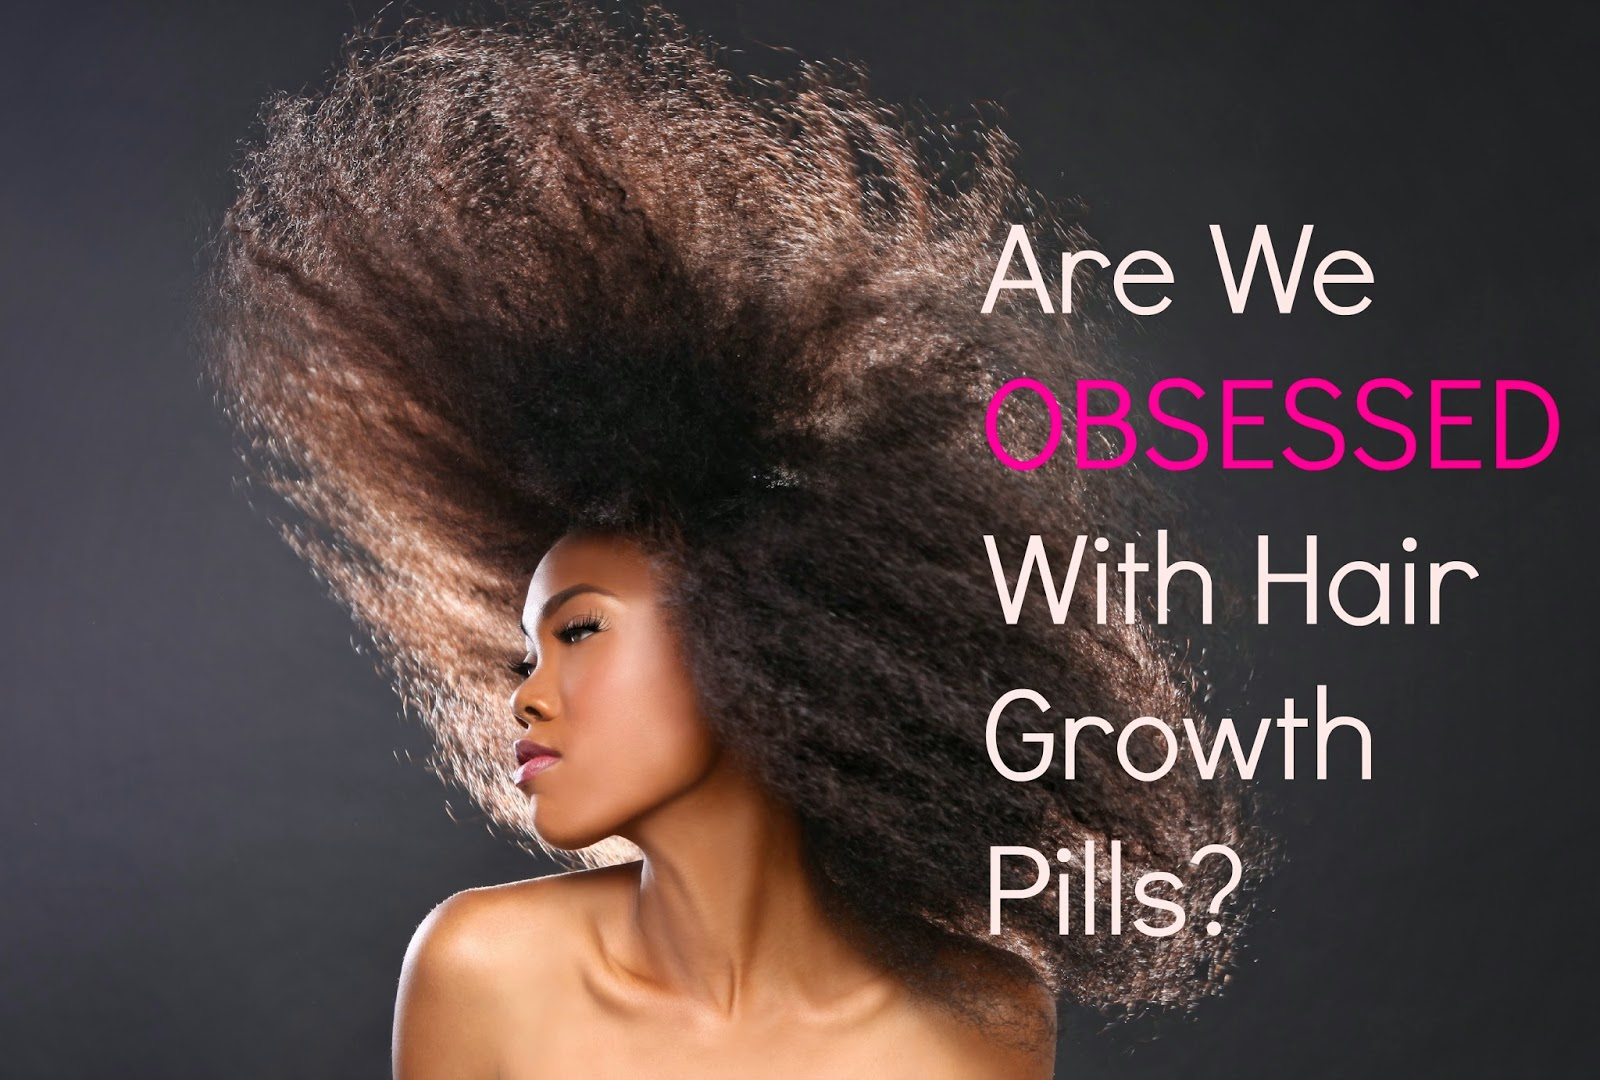 Are We OBSESSED With Hair Growth Pills? www.seriouslynatural.org